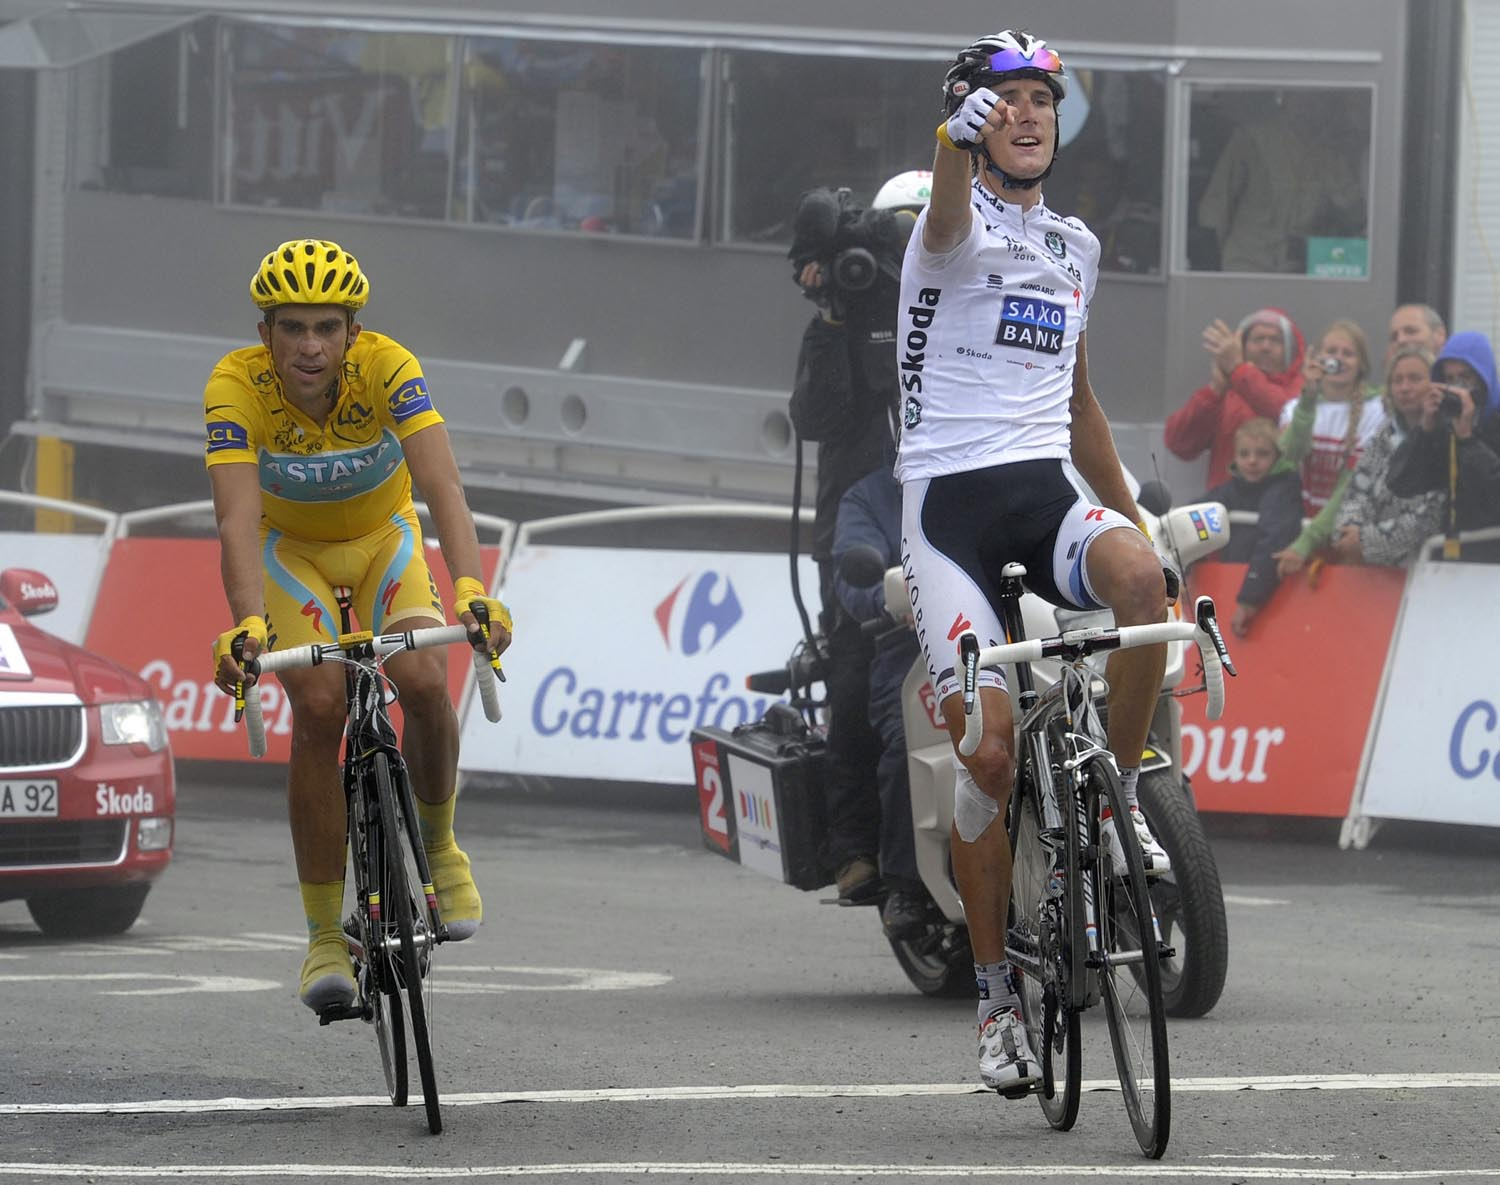 schleck wins on the tourmalet but cannot shake off contador